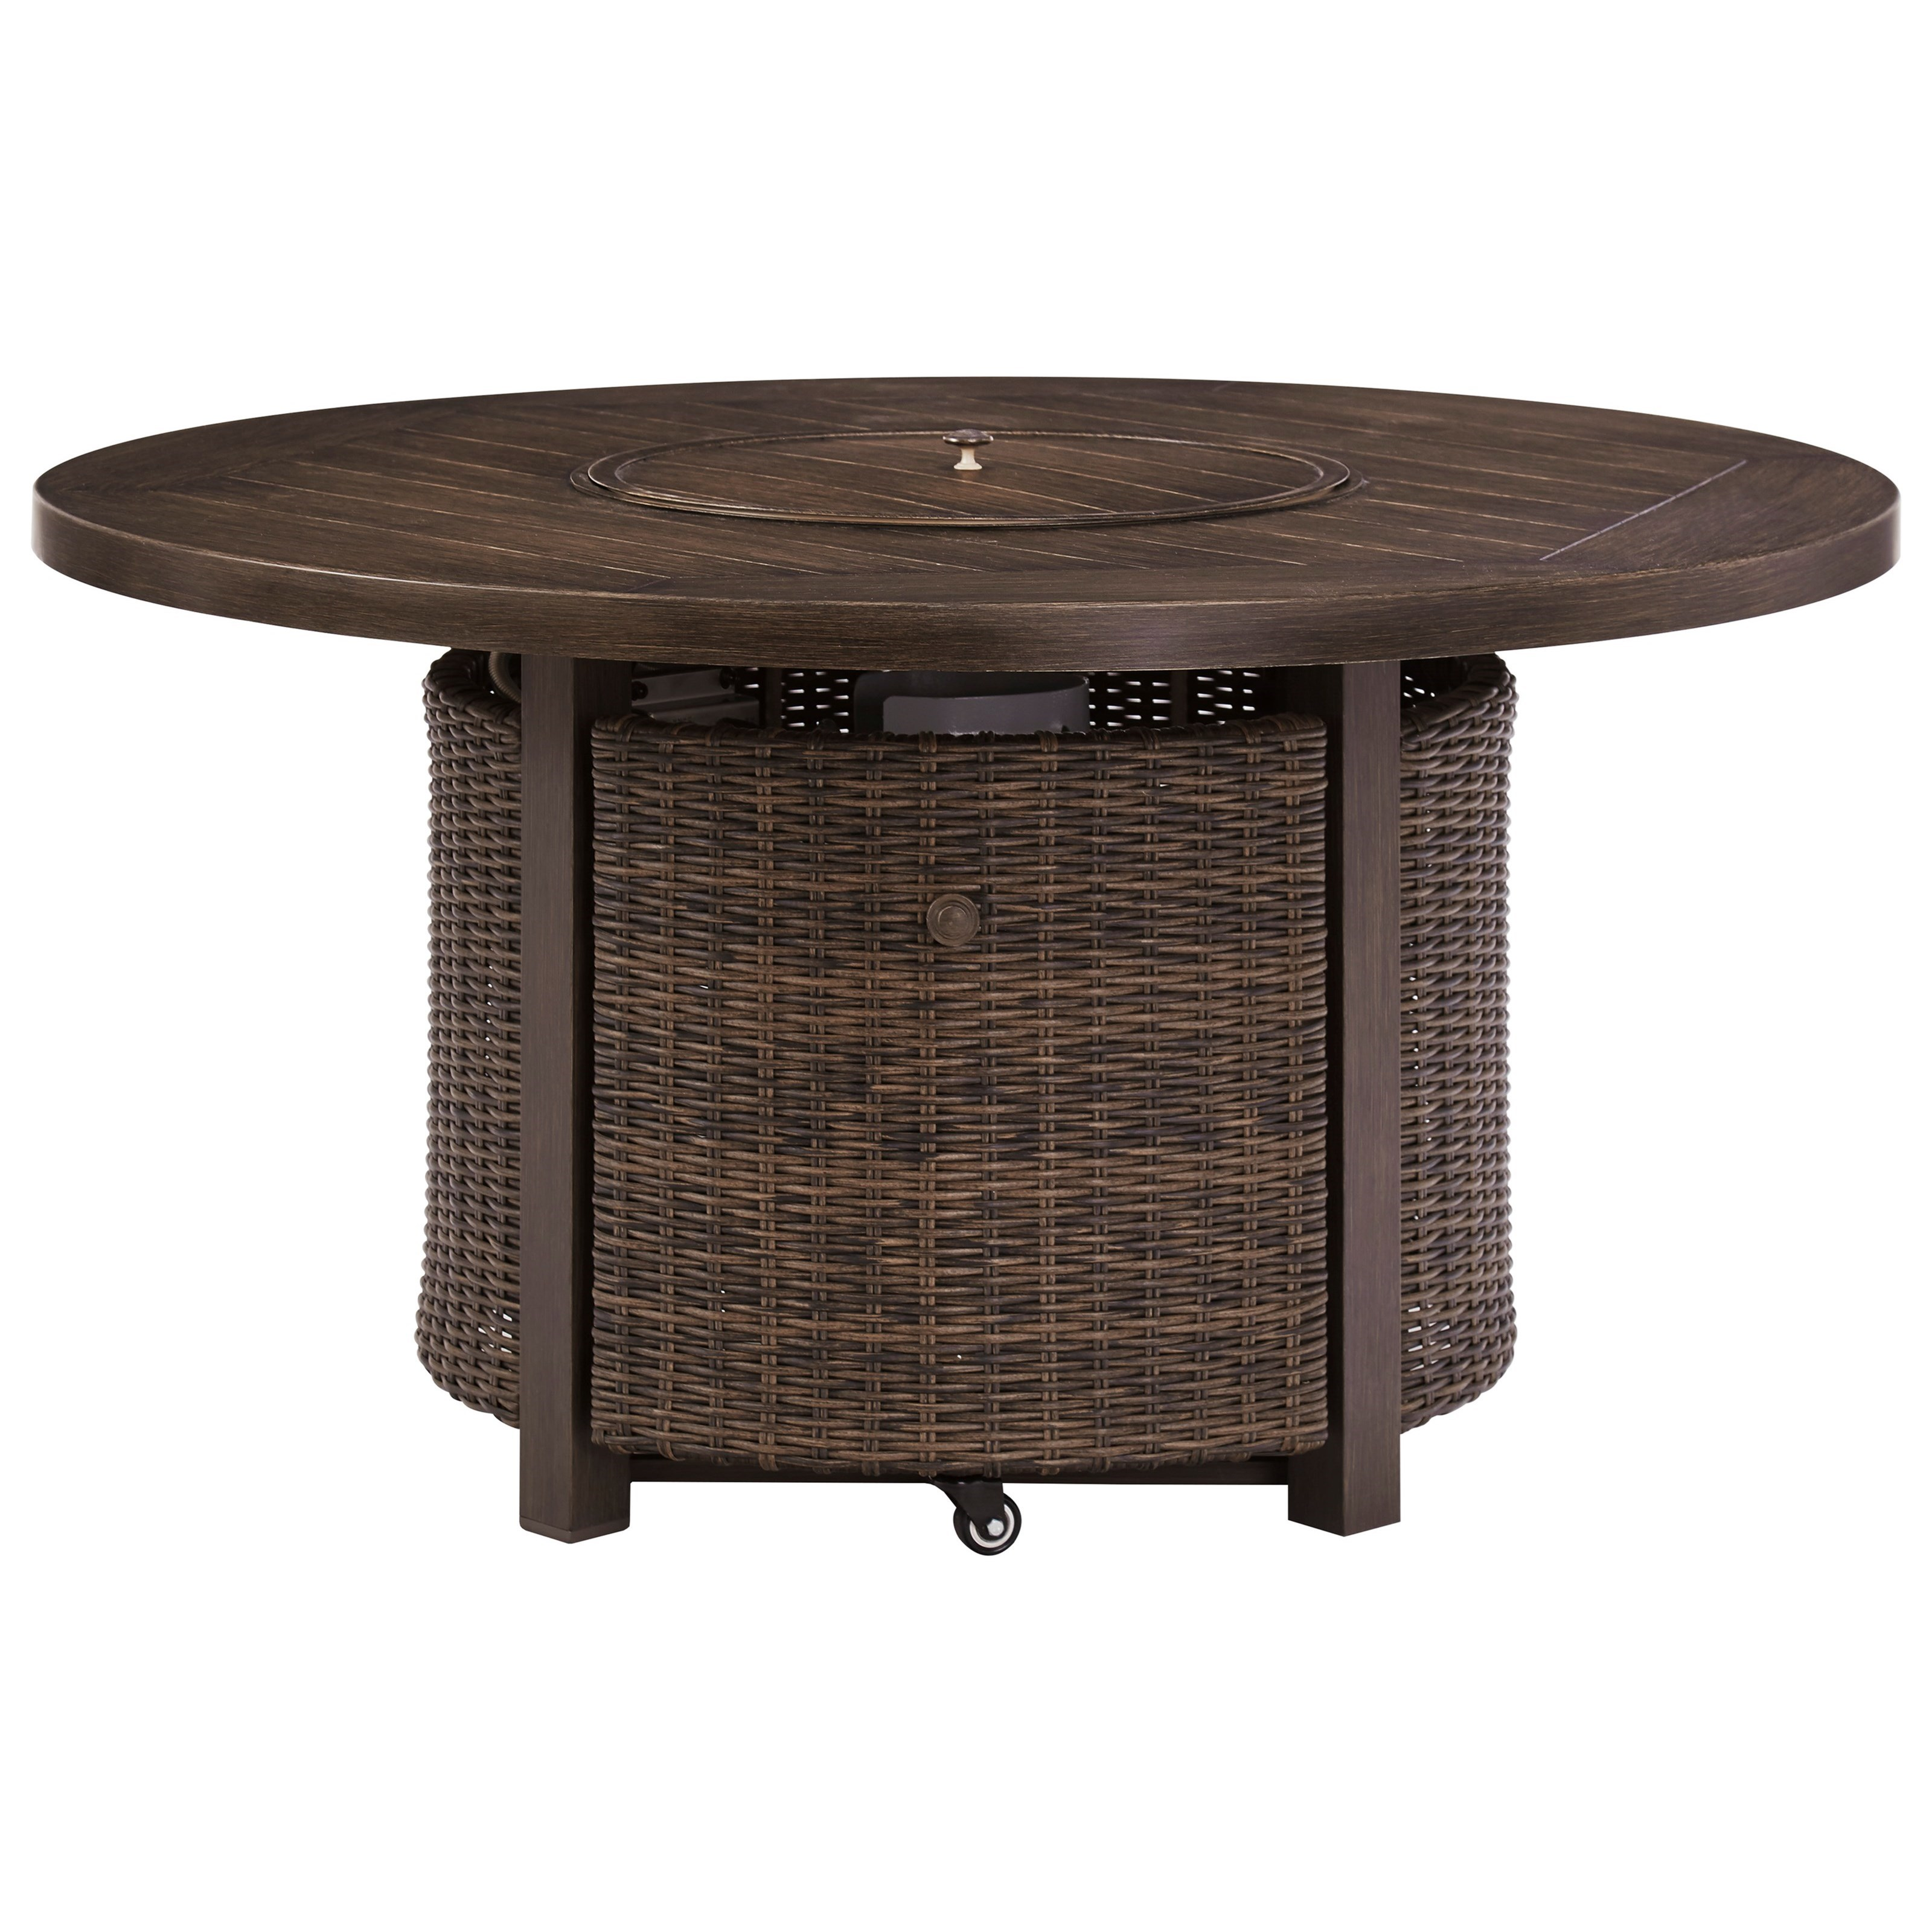 Paradise Trail Round Fire Pit Table by Signature at Walker's Furniture